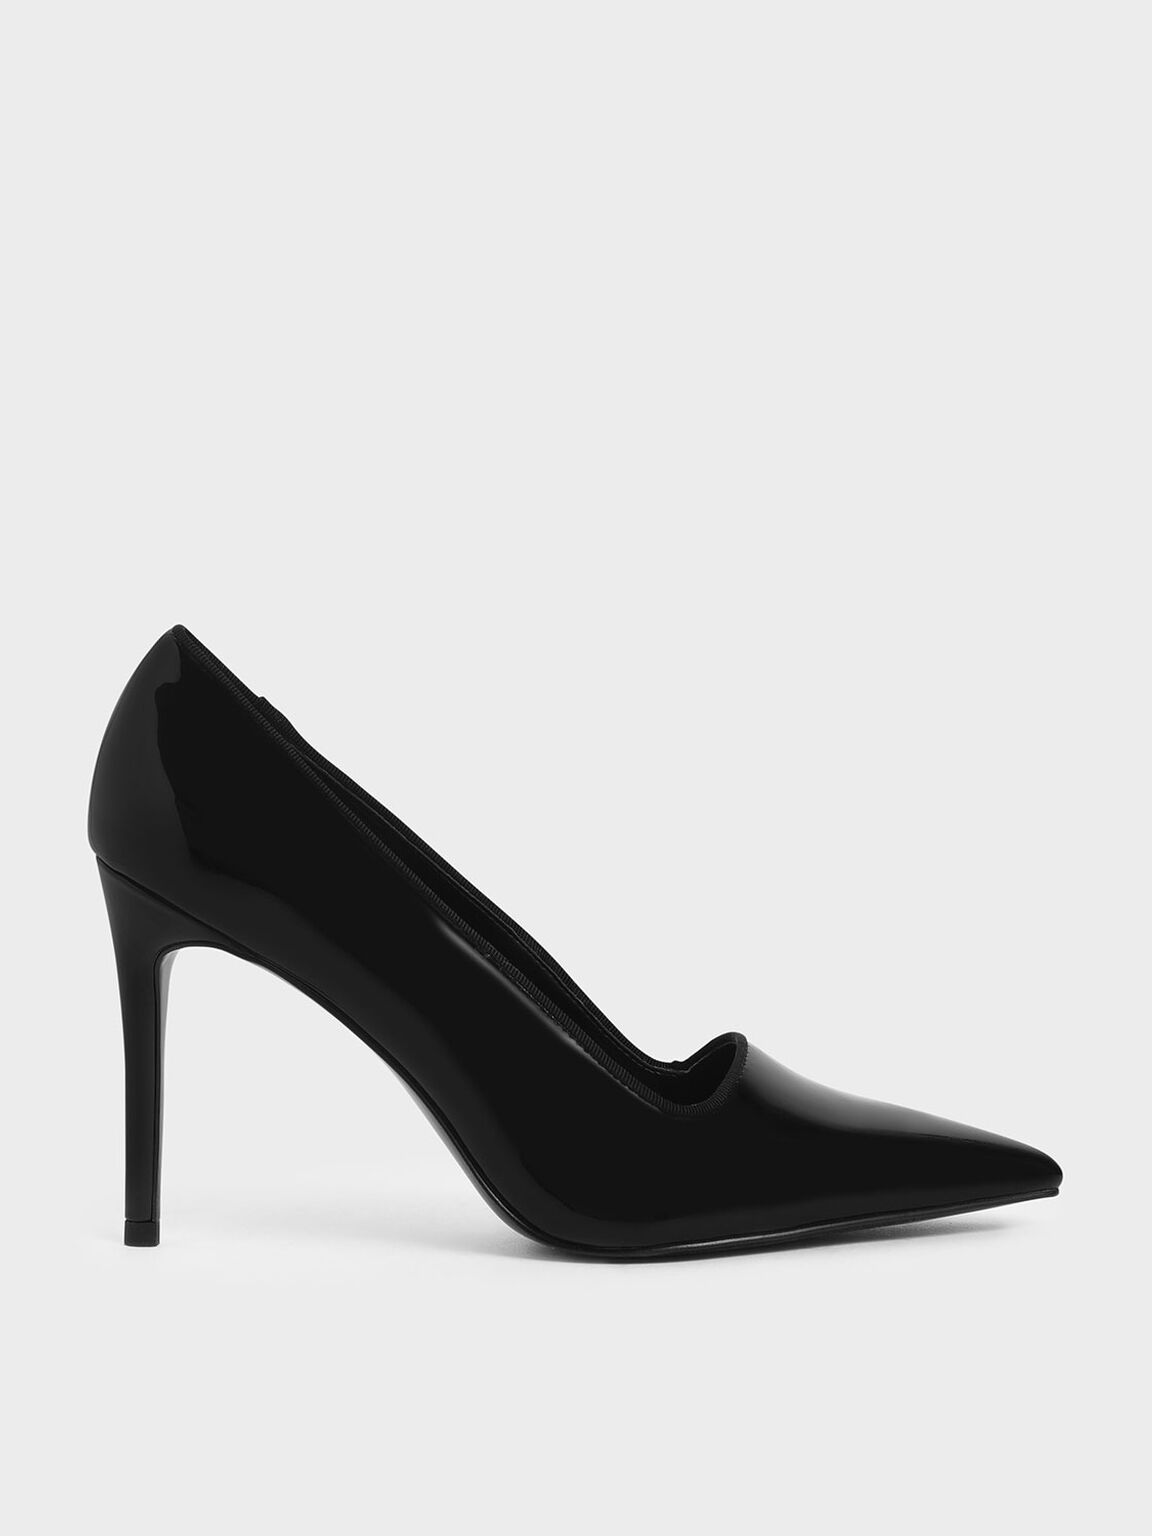 Patent Stiletto Pumps, Black, hi-res